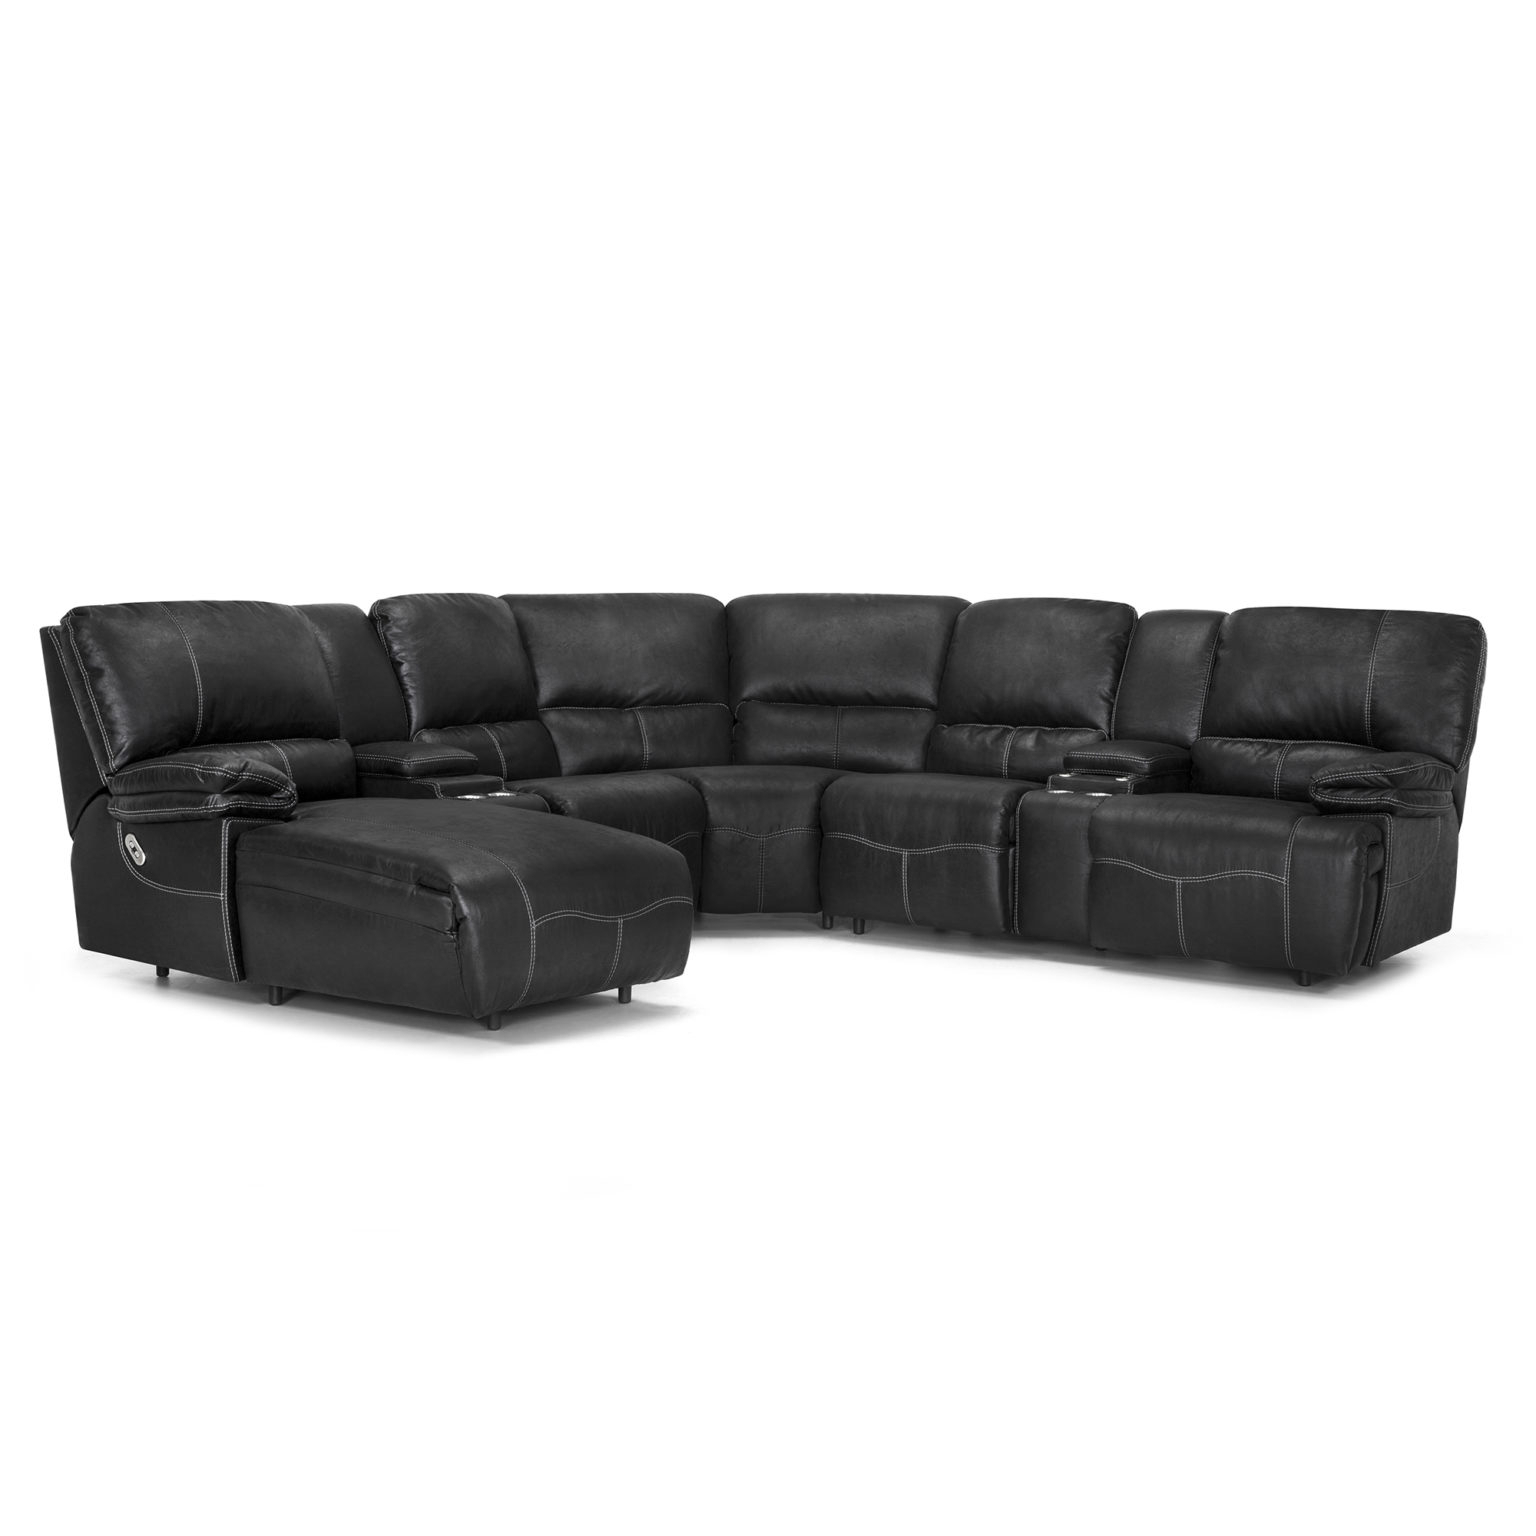 Favorite 440 Brayden Sectional – Franklin Corporation With Colby Manual Reclining Sofas (View 8 of 20)